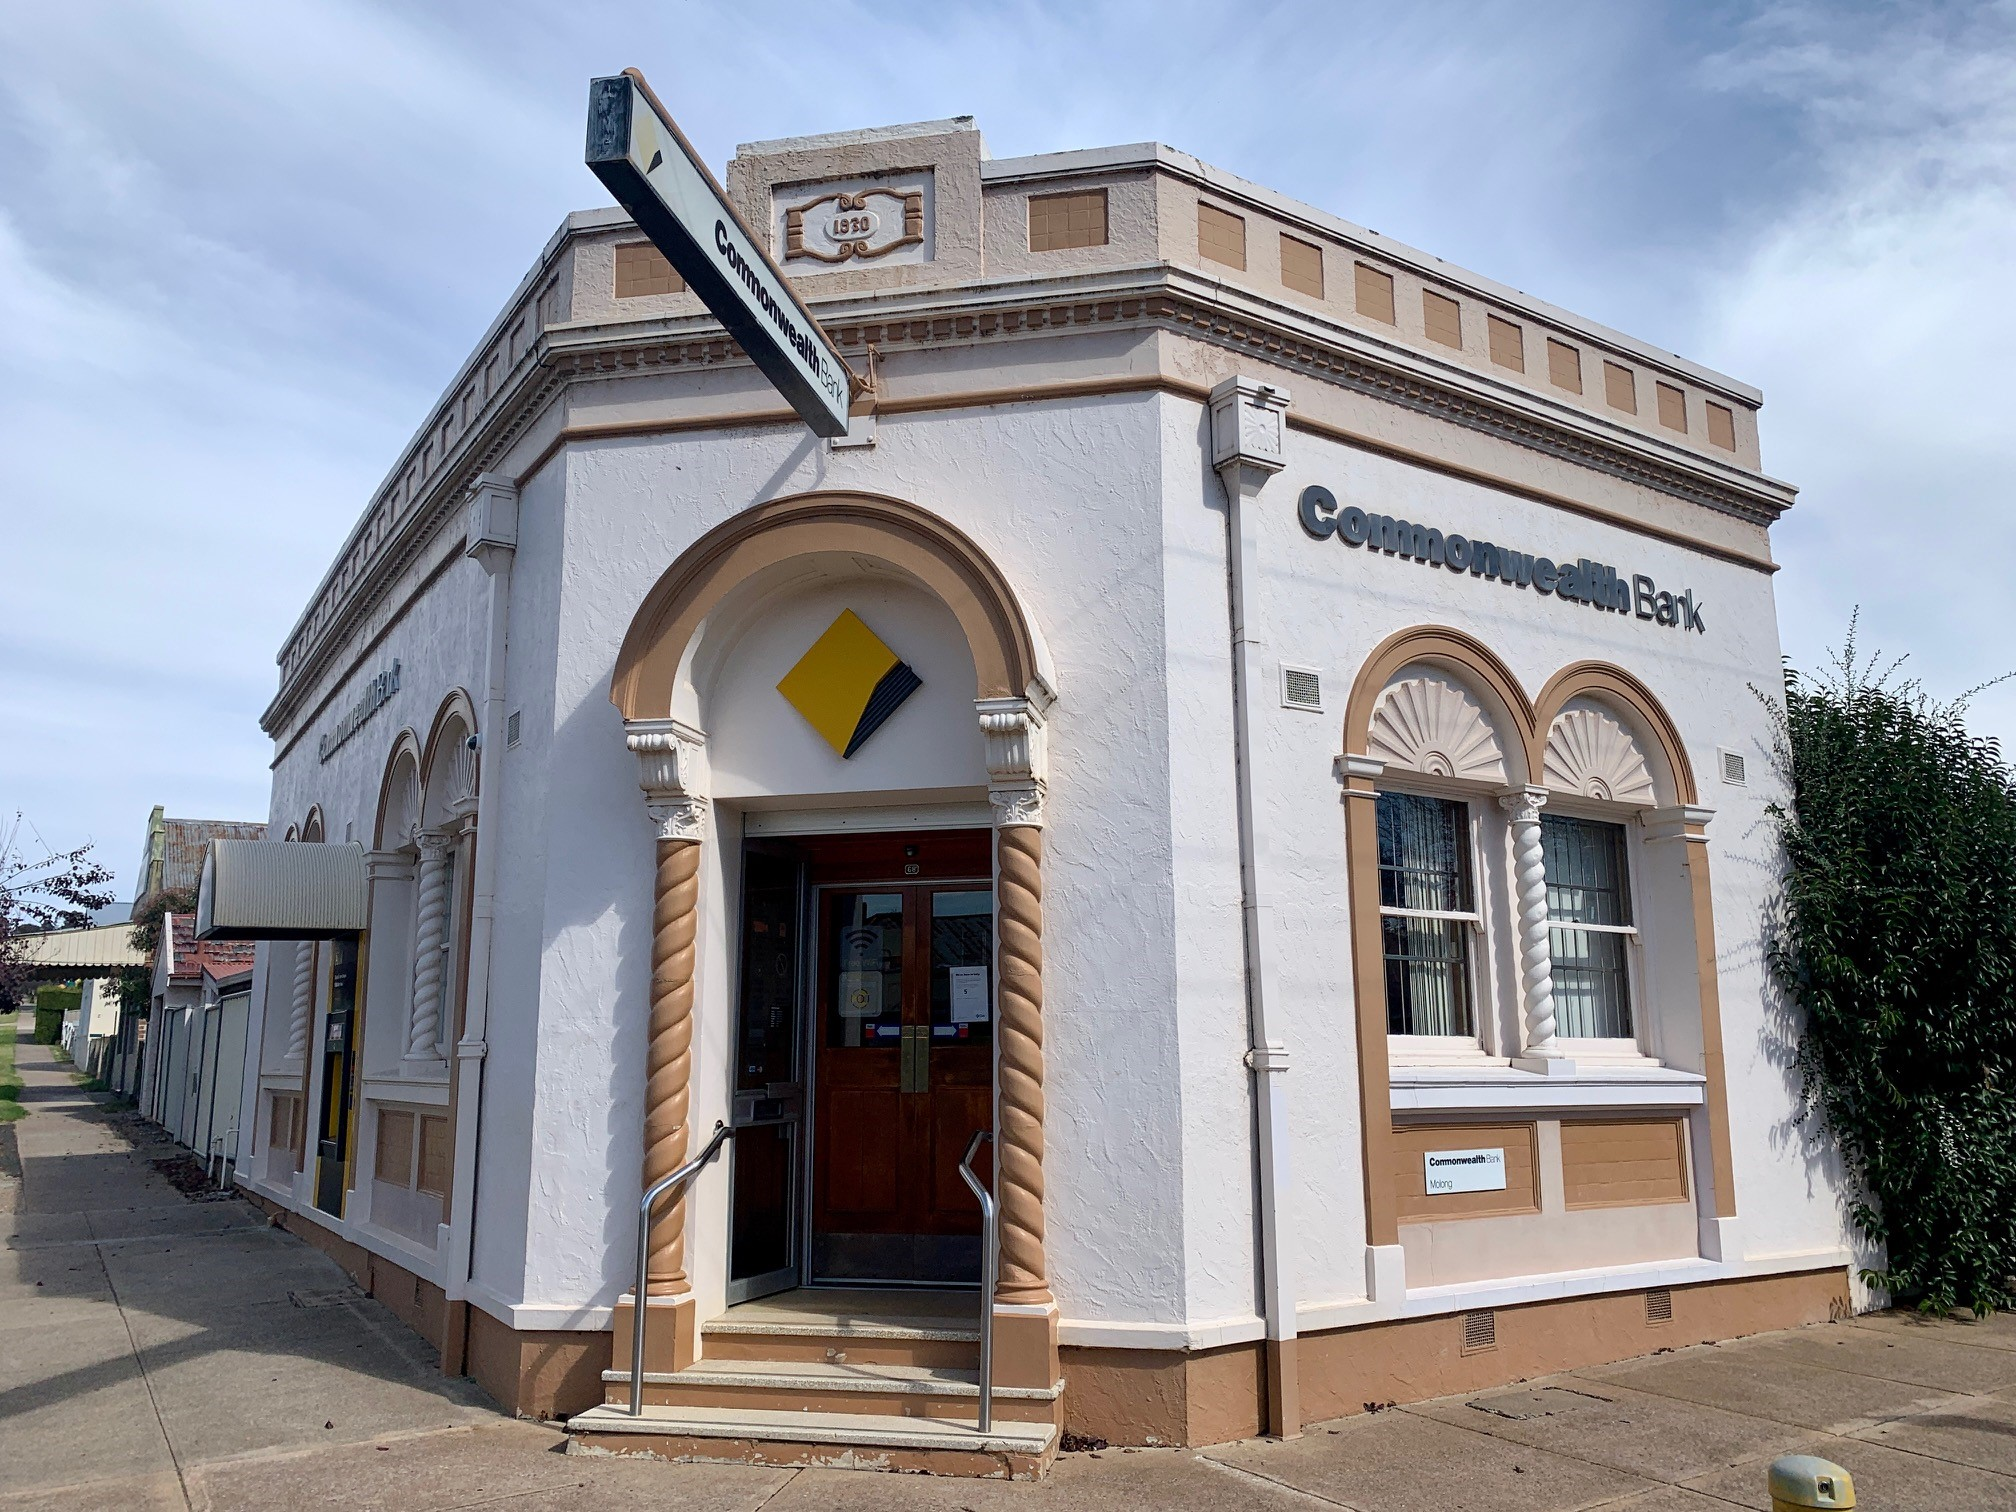 A Commonwealth Bank branch in a historic building.